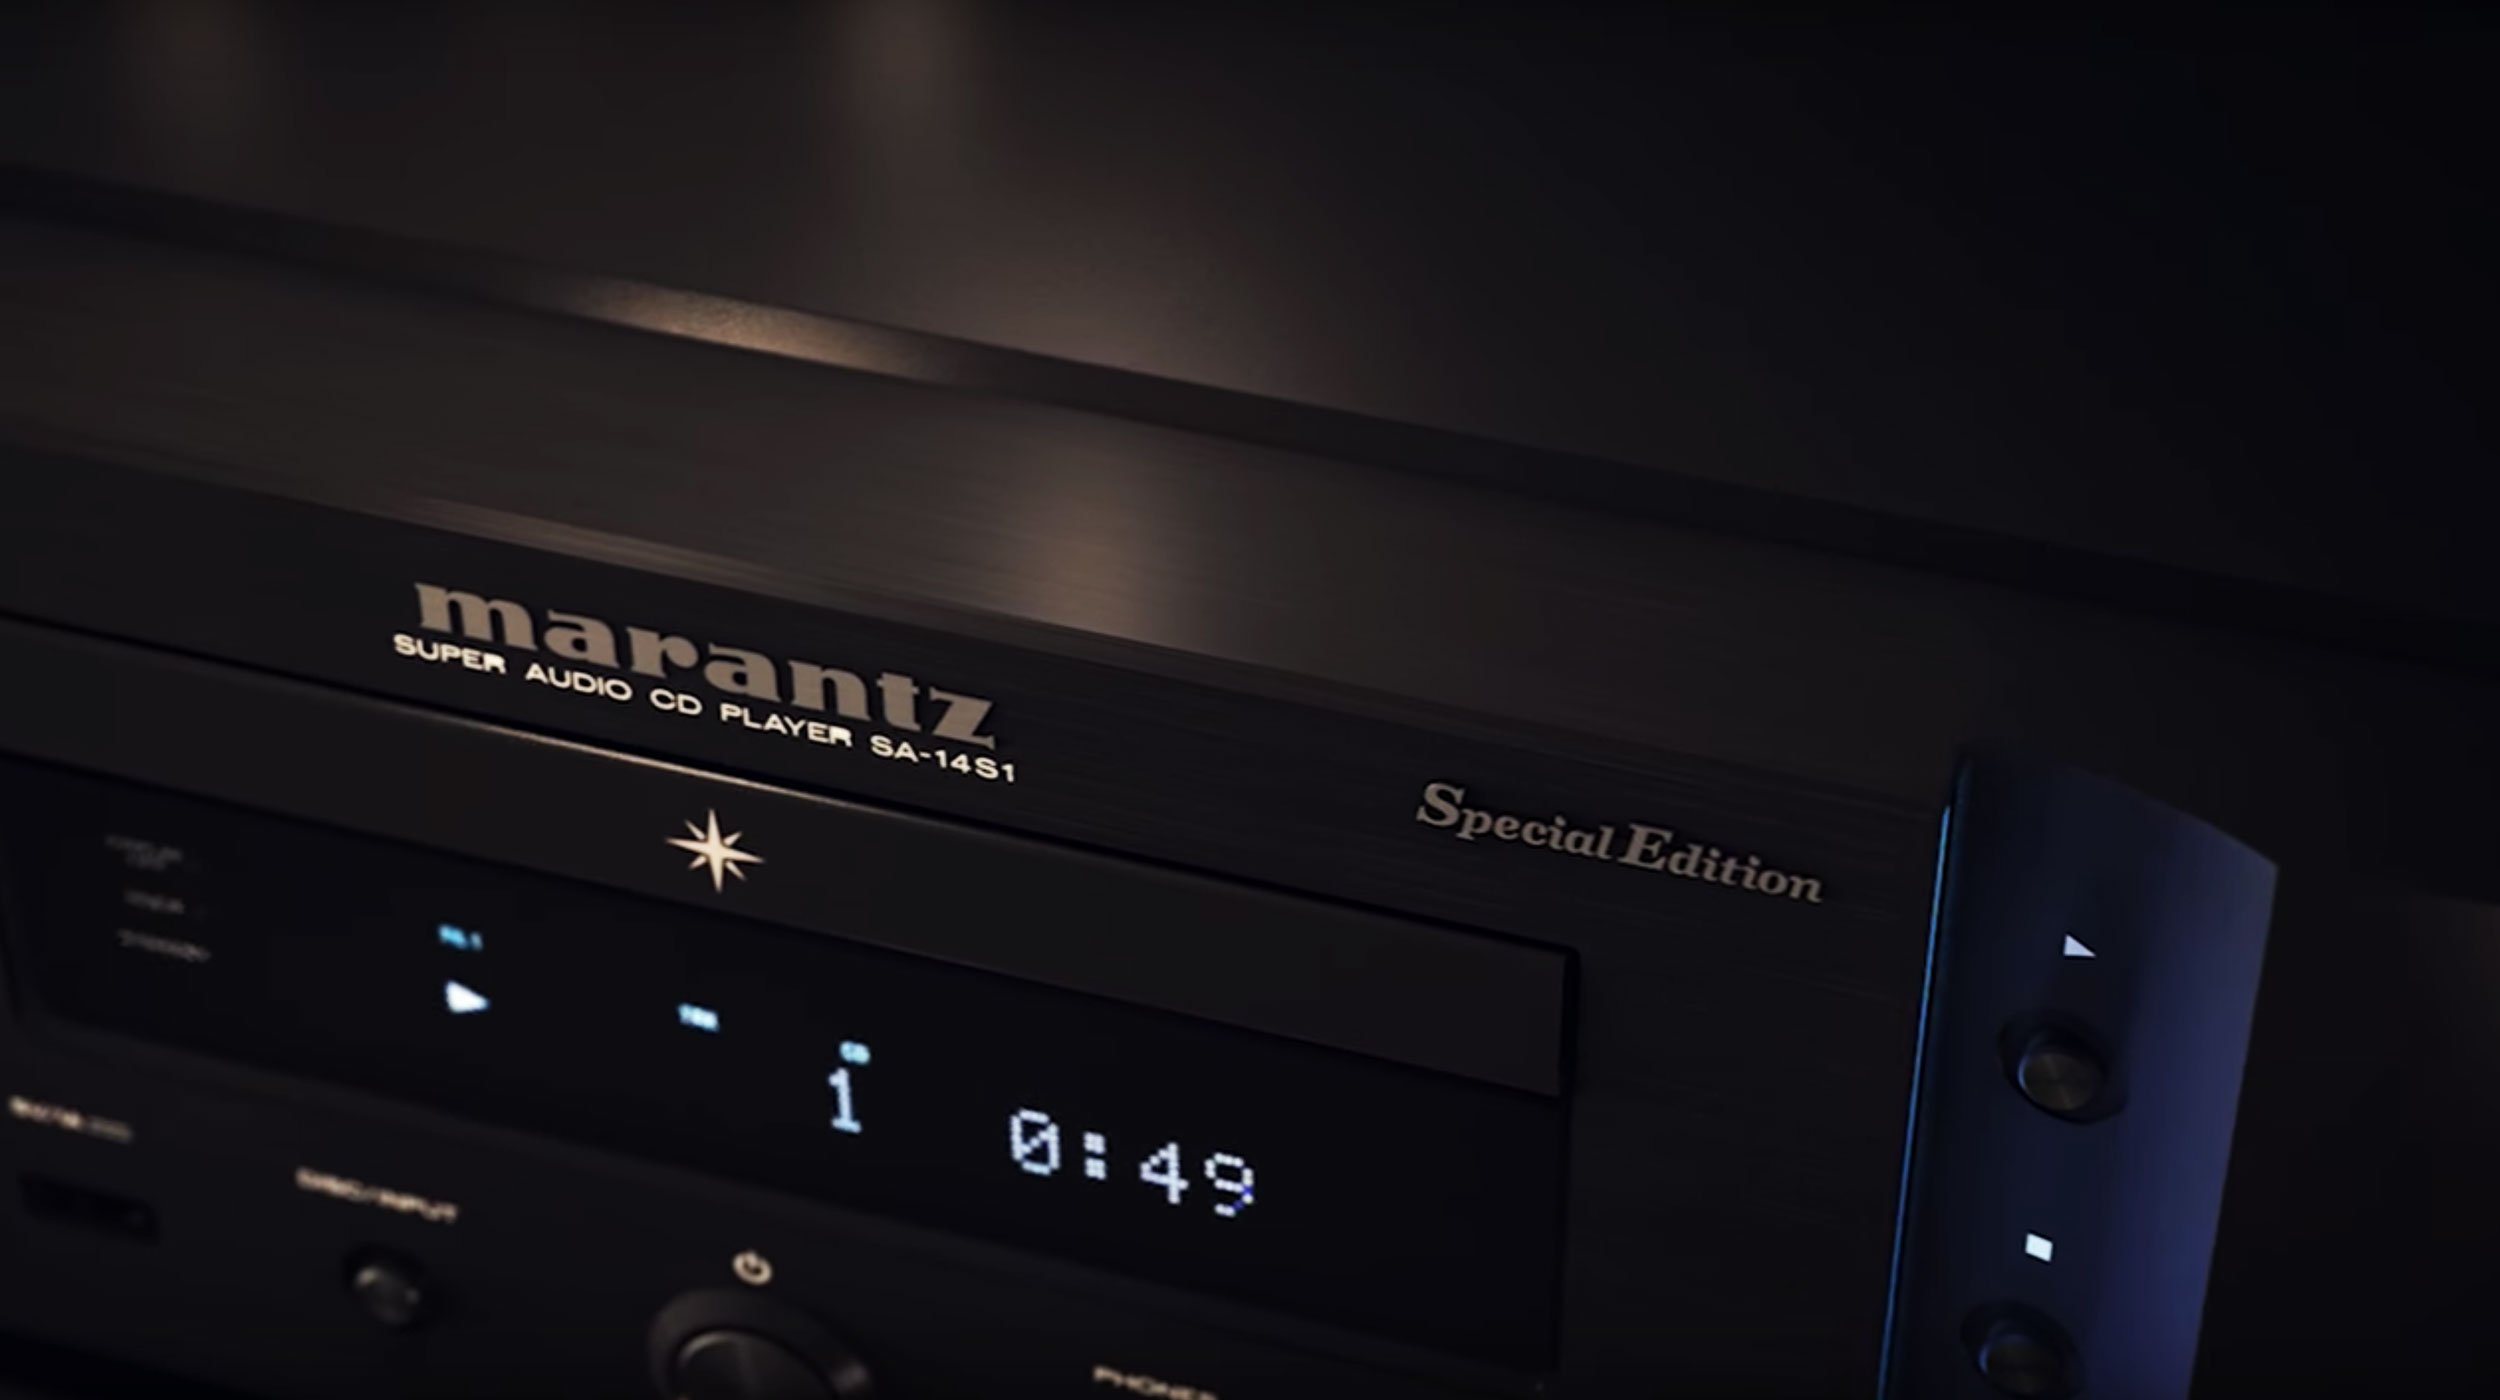 Marantz AV Receivers